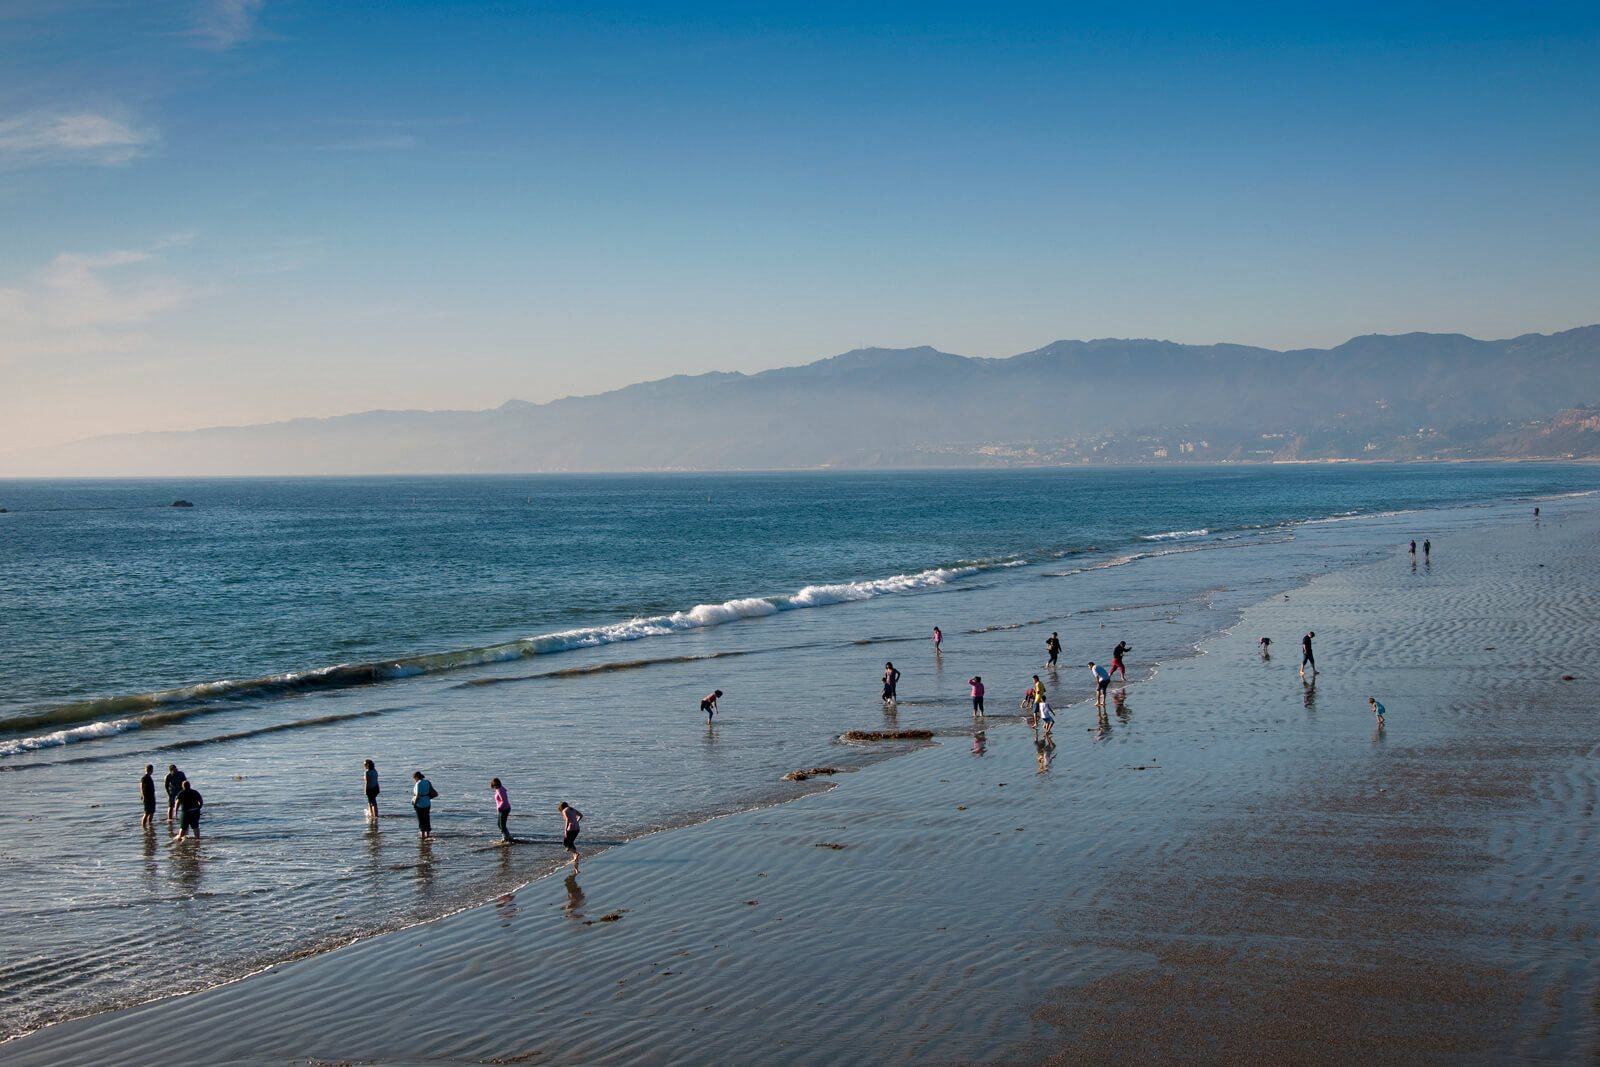 Enjoy a Day at the Beach near Sea Castle, 90401, CA